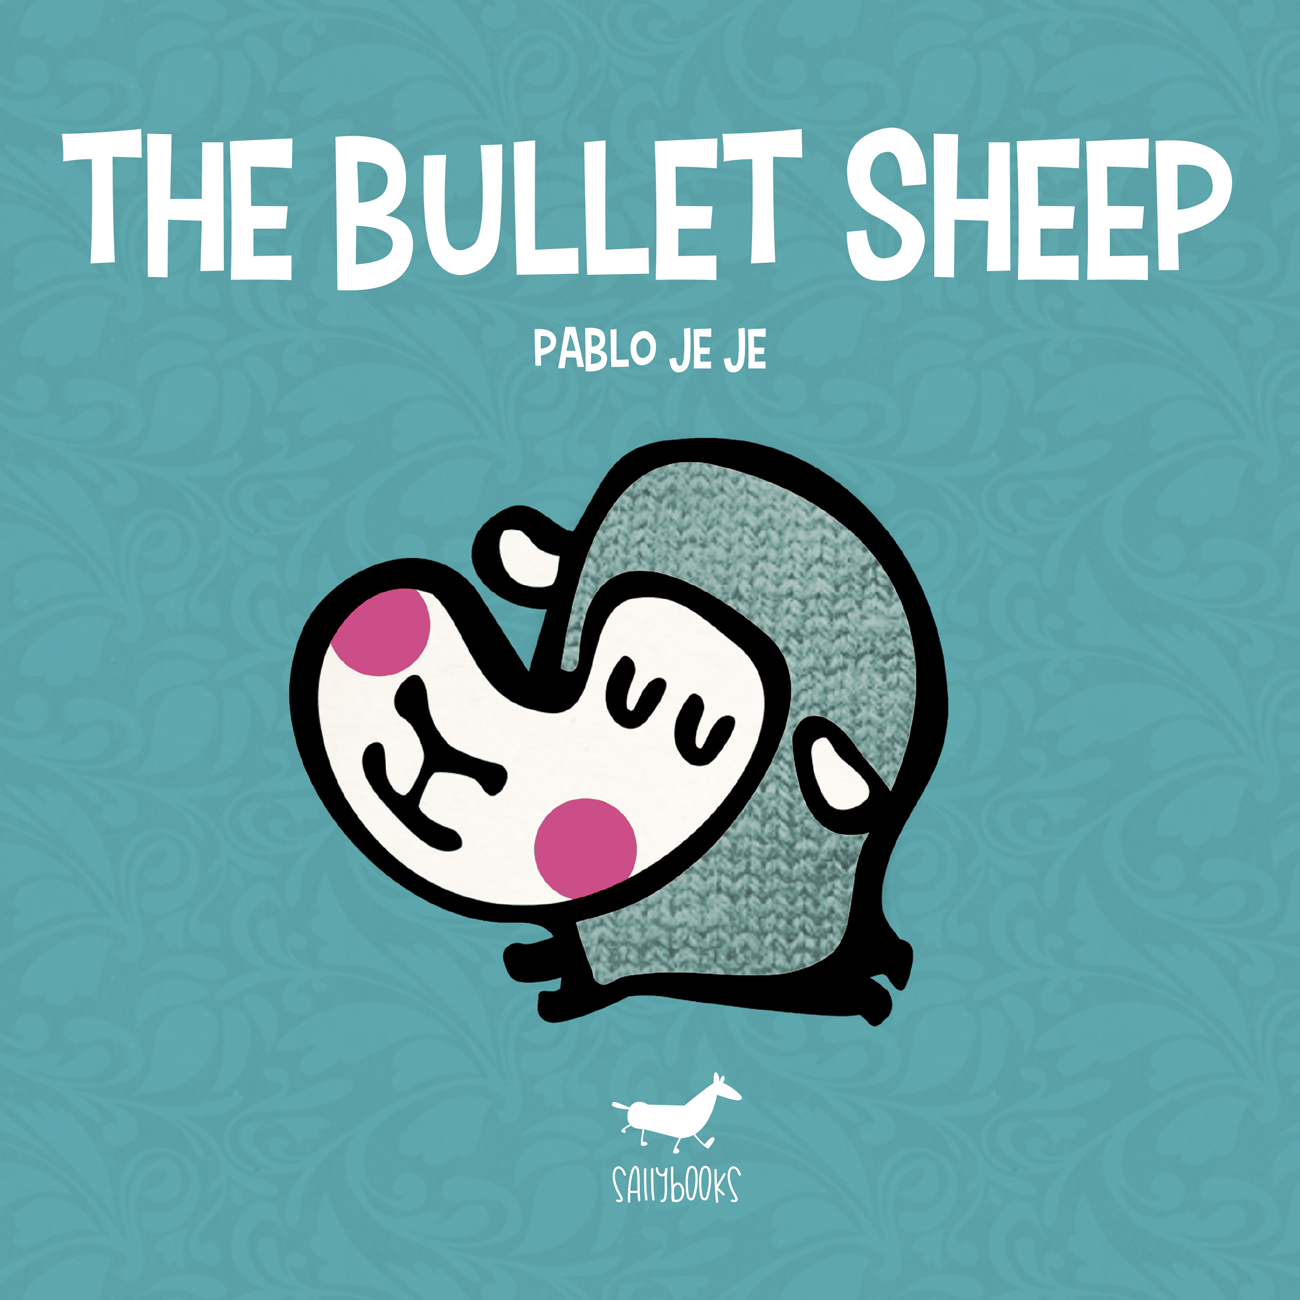 THE BULLET SHEEP